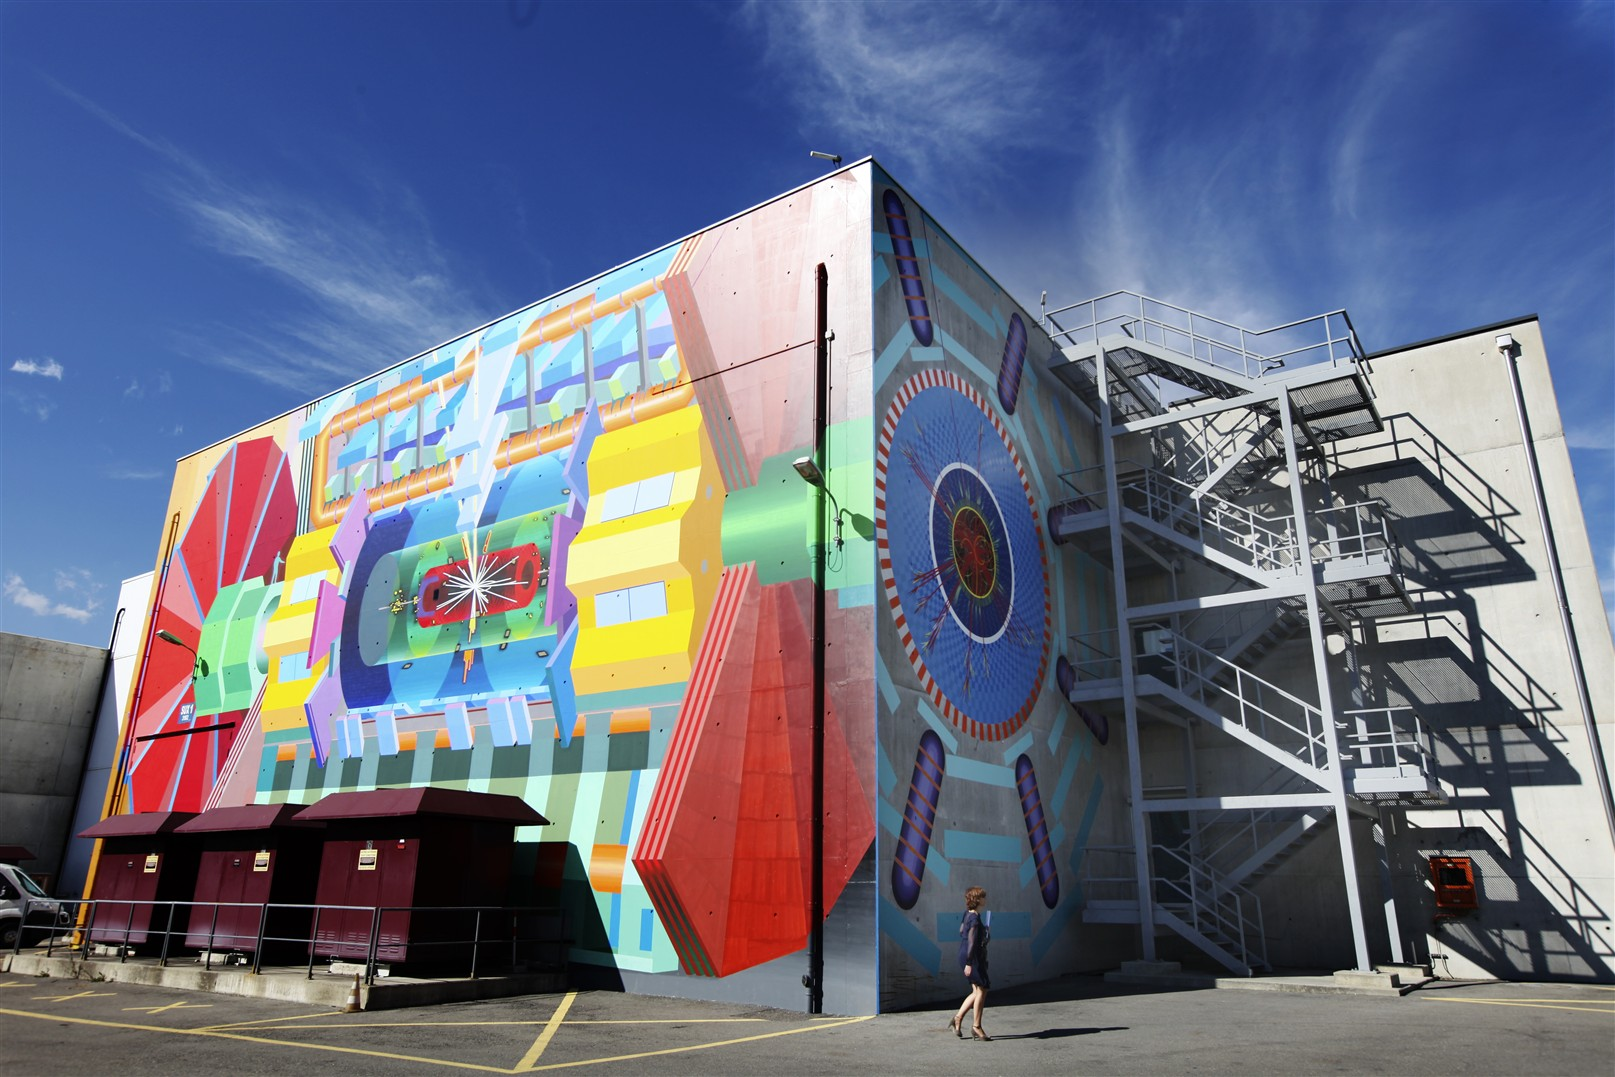 Photos of the massive ATLAS art mural at point 01 at CERN by Josef Kristofoletti, completed.